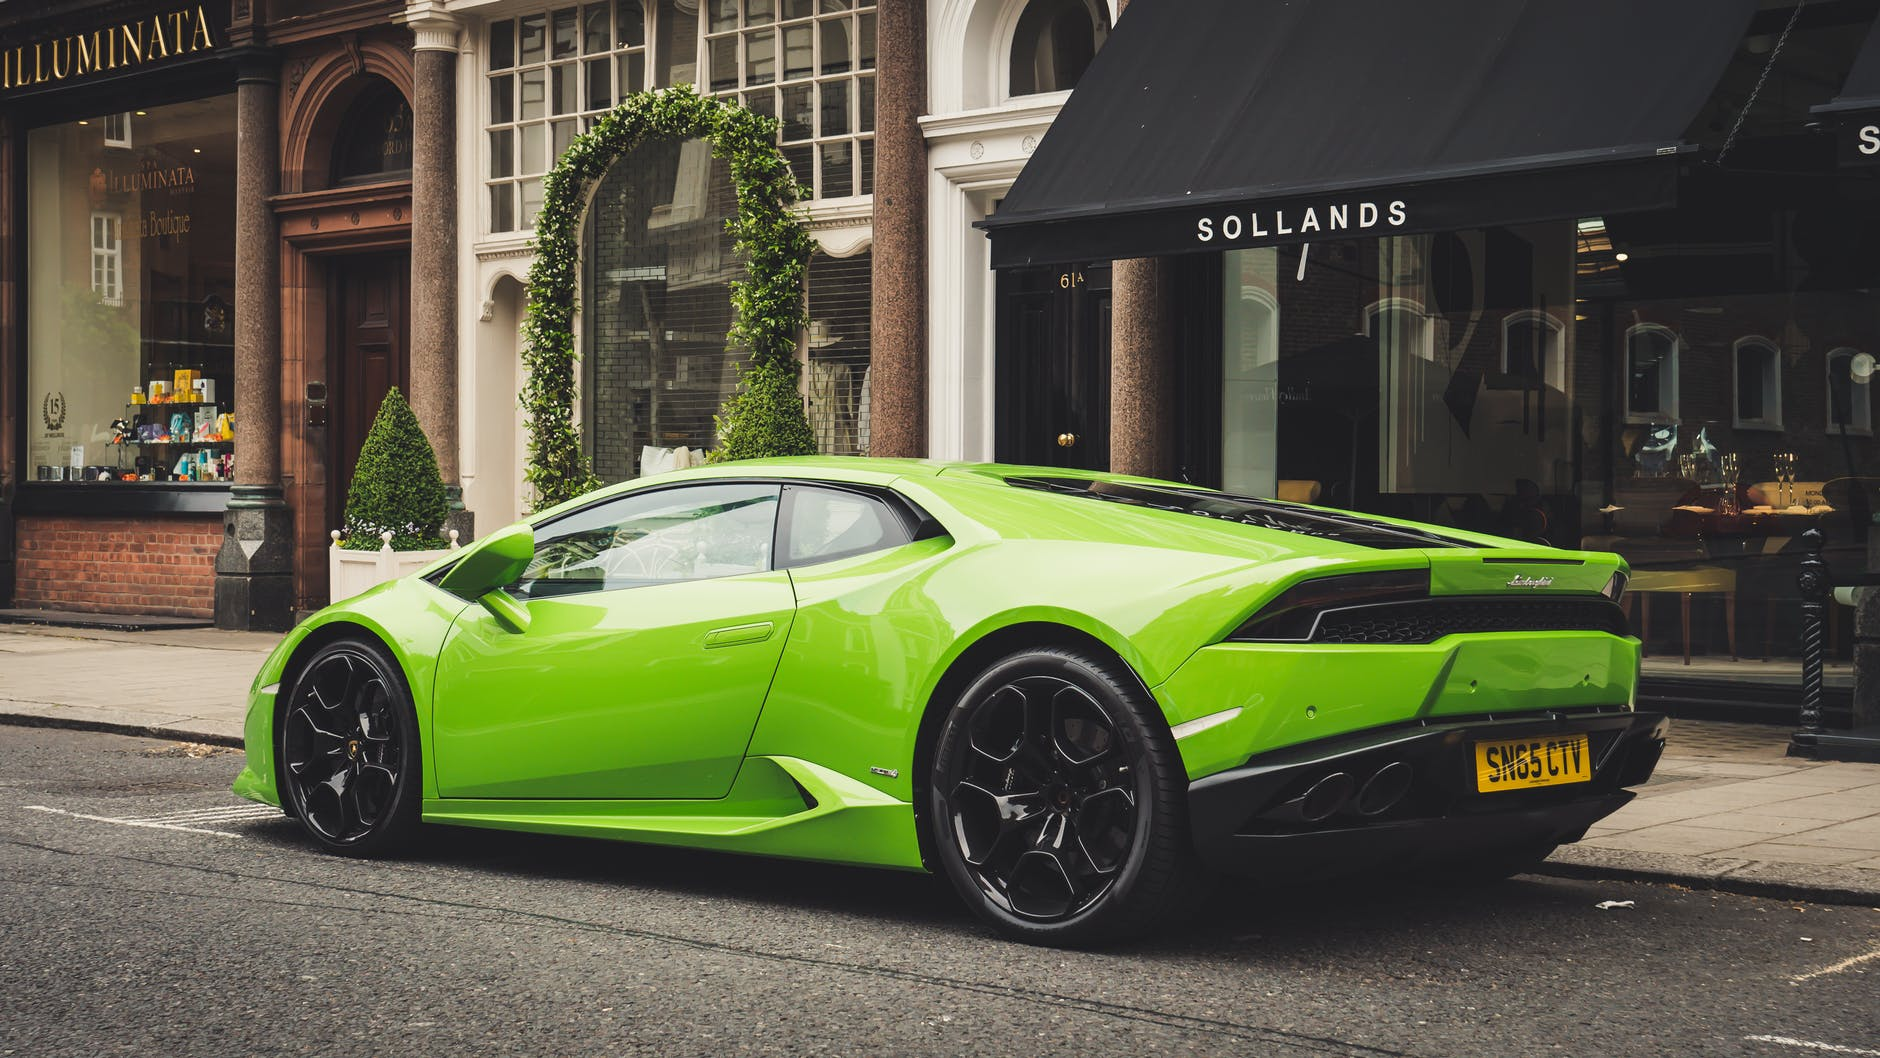 photo of parked lime green lamborghini